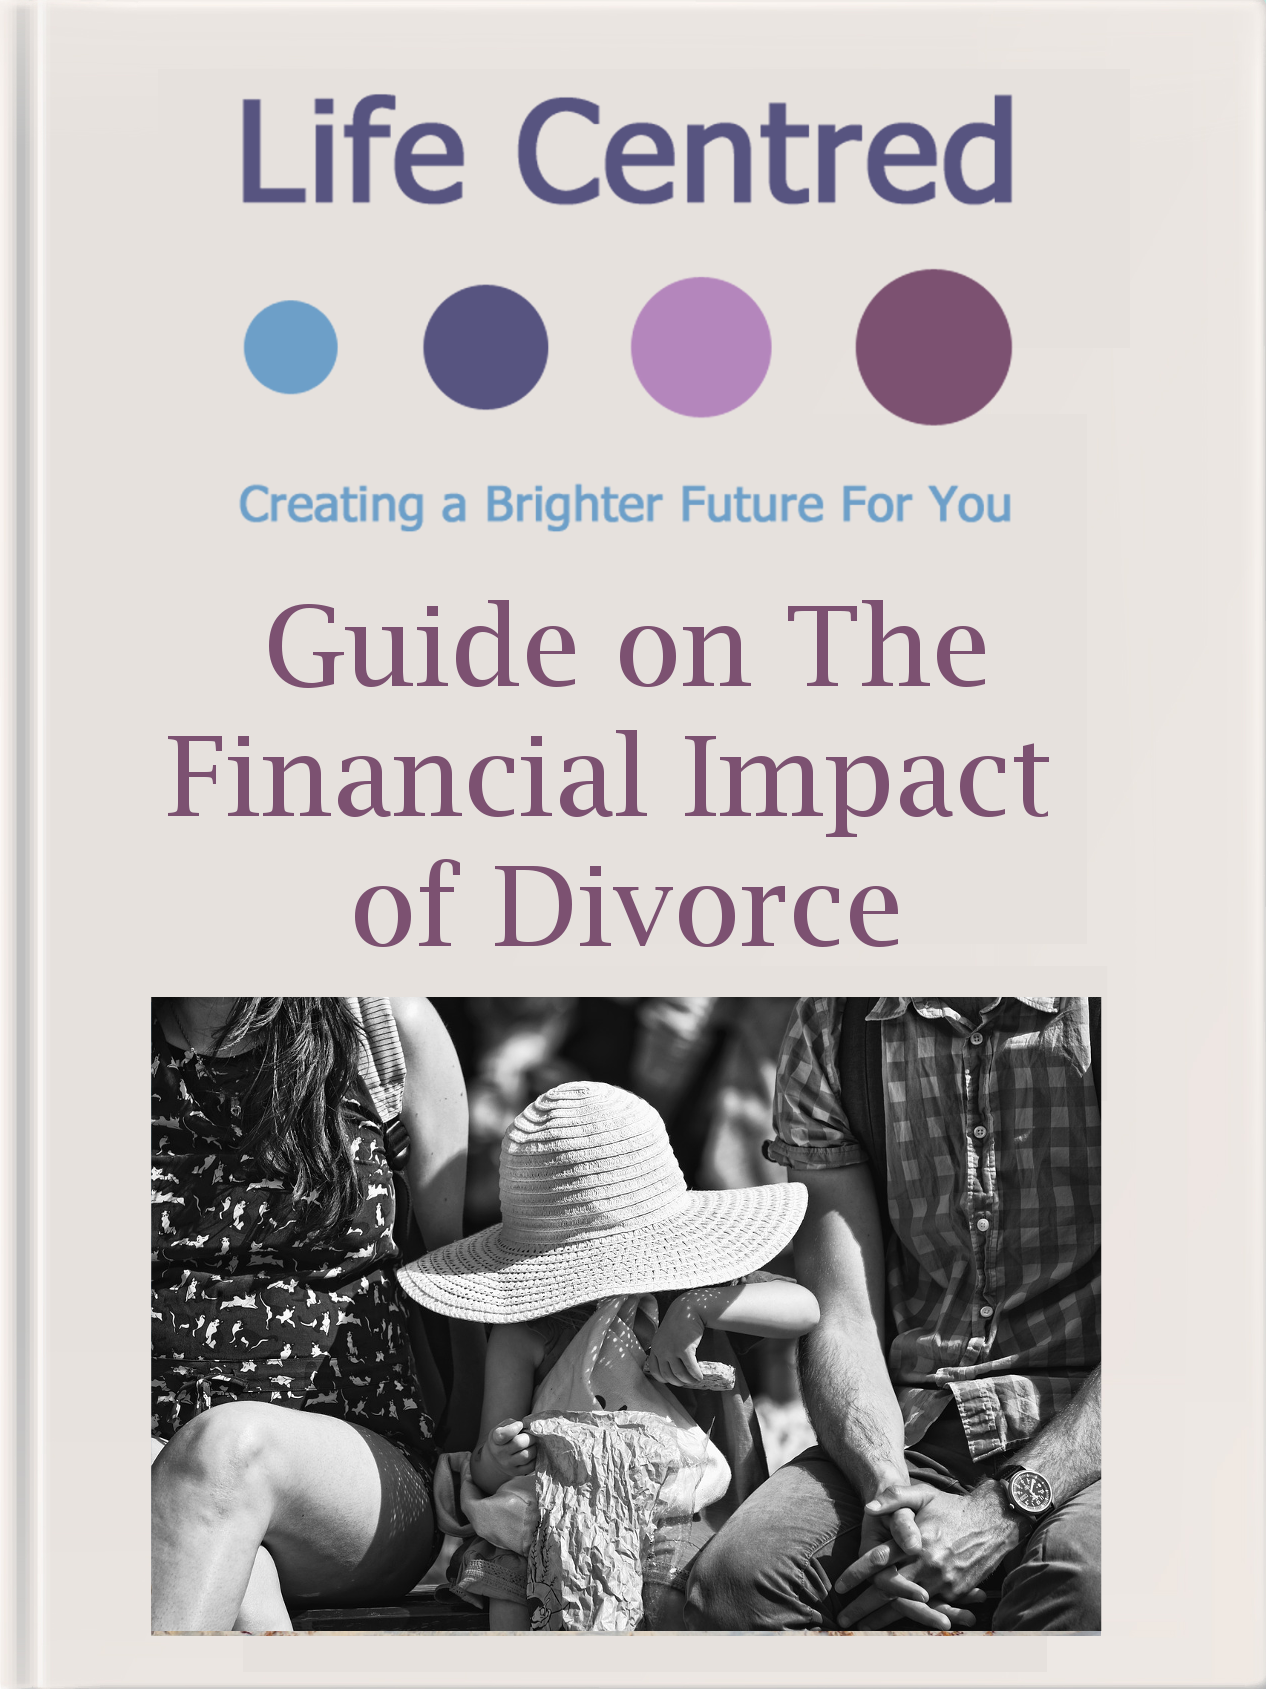 Download our Divorce Guide